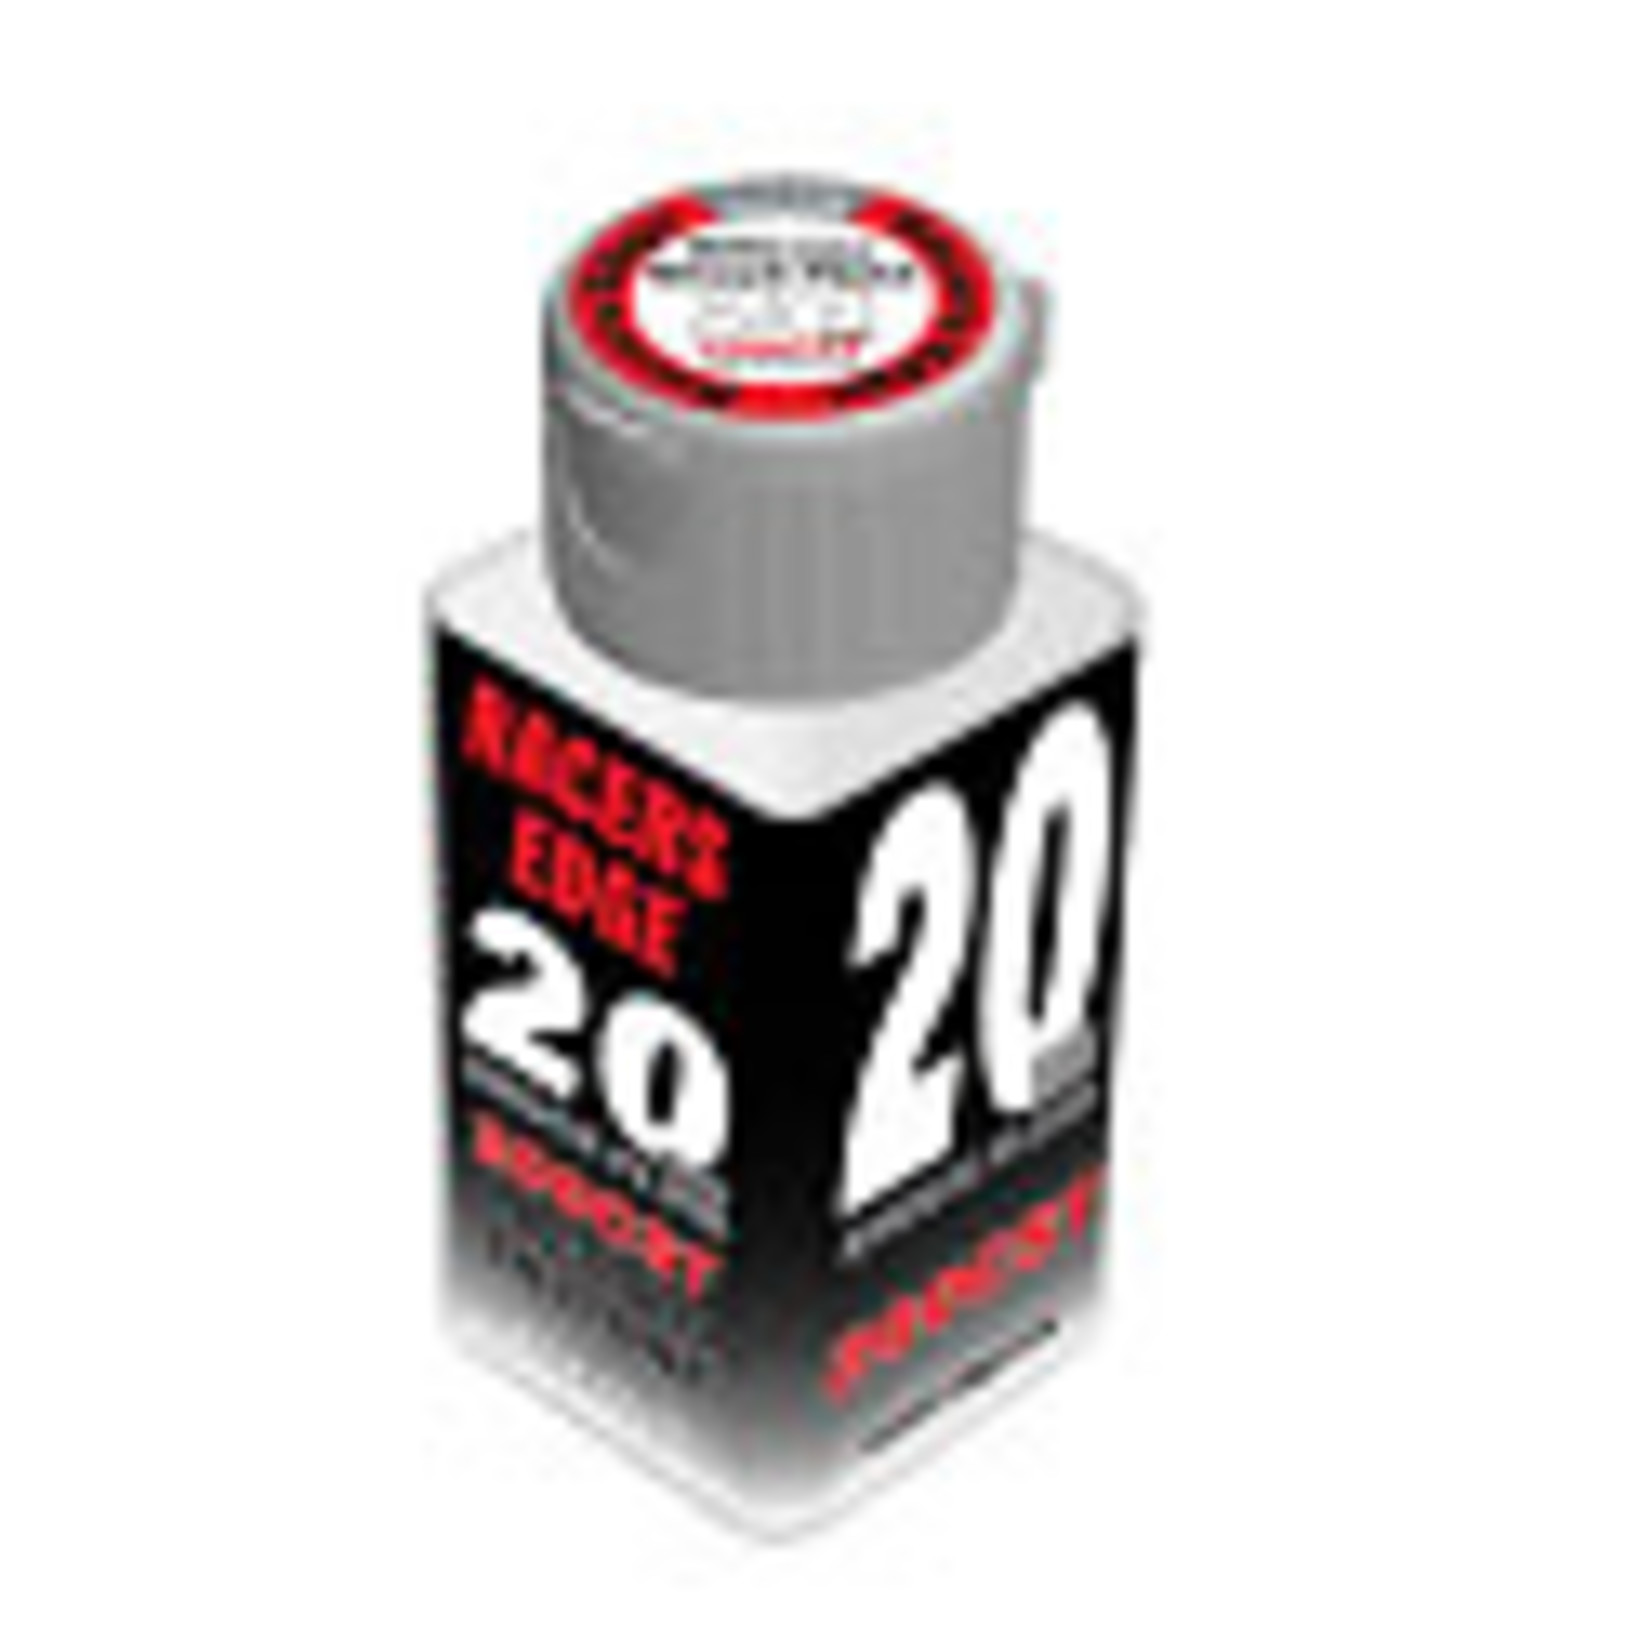 Racers Edge 20 Weight, 200cSt, 70ml 2.36oz Pure Silicone Shock Oil